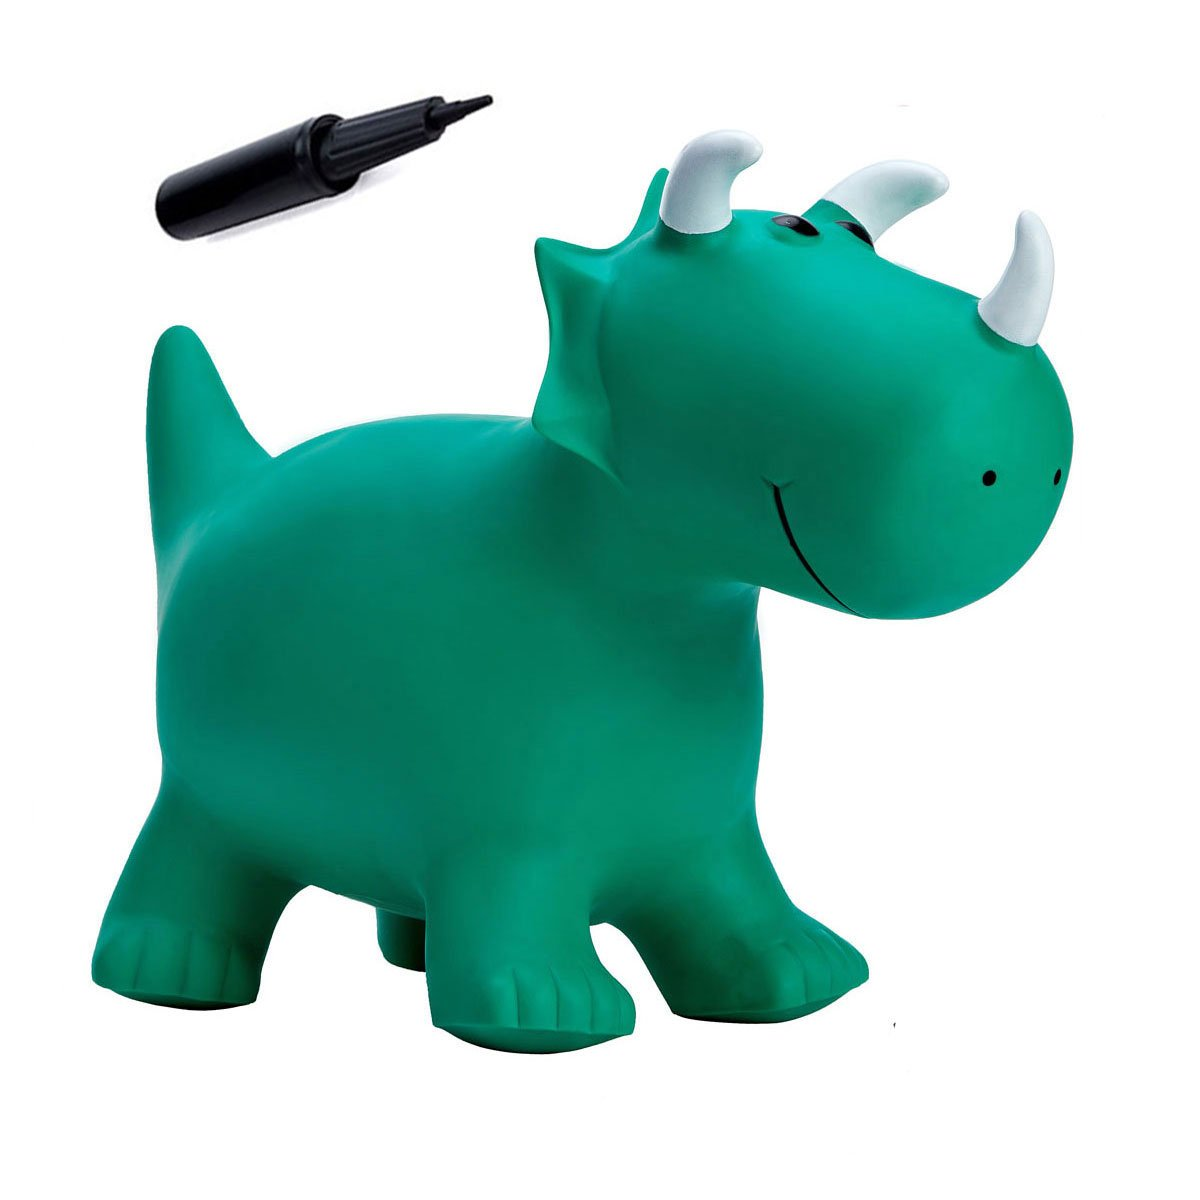 Babe Fairy Jumping Horse with Pump-Hopper Horses Jumping Animals Hopper-Inflatable Ride-on Green Dinosaur Toys For Kids-Inflatable Dinosaurs for Lawn Game(Green Dinosaur)